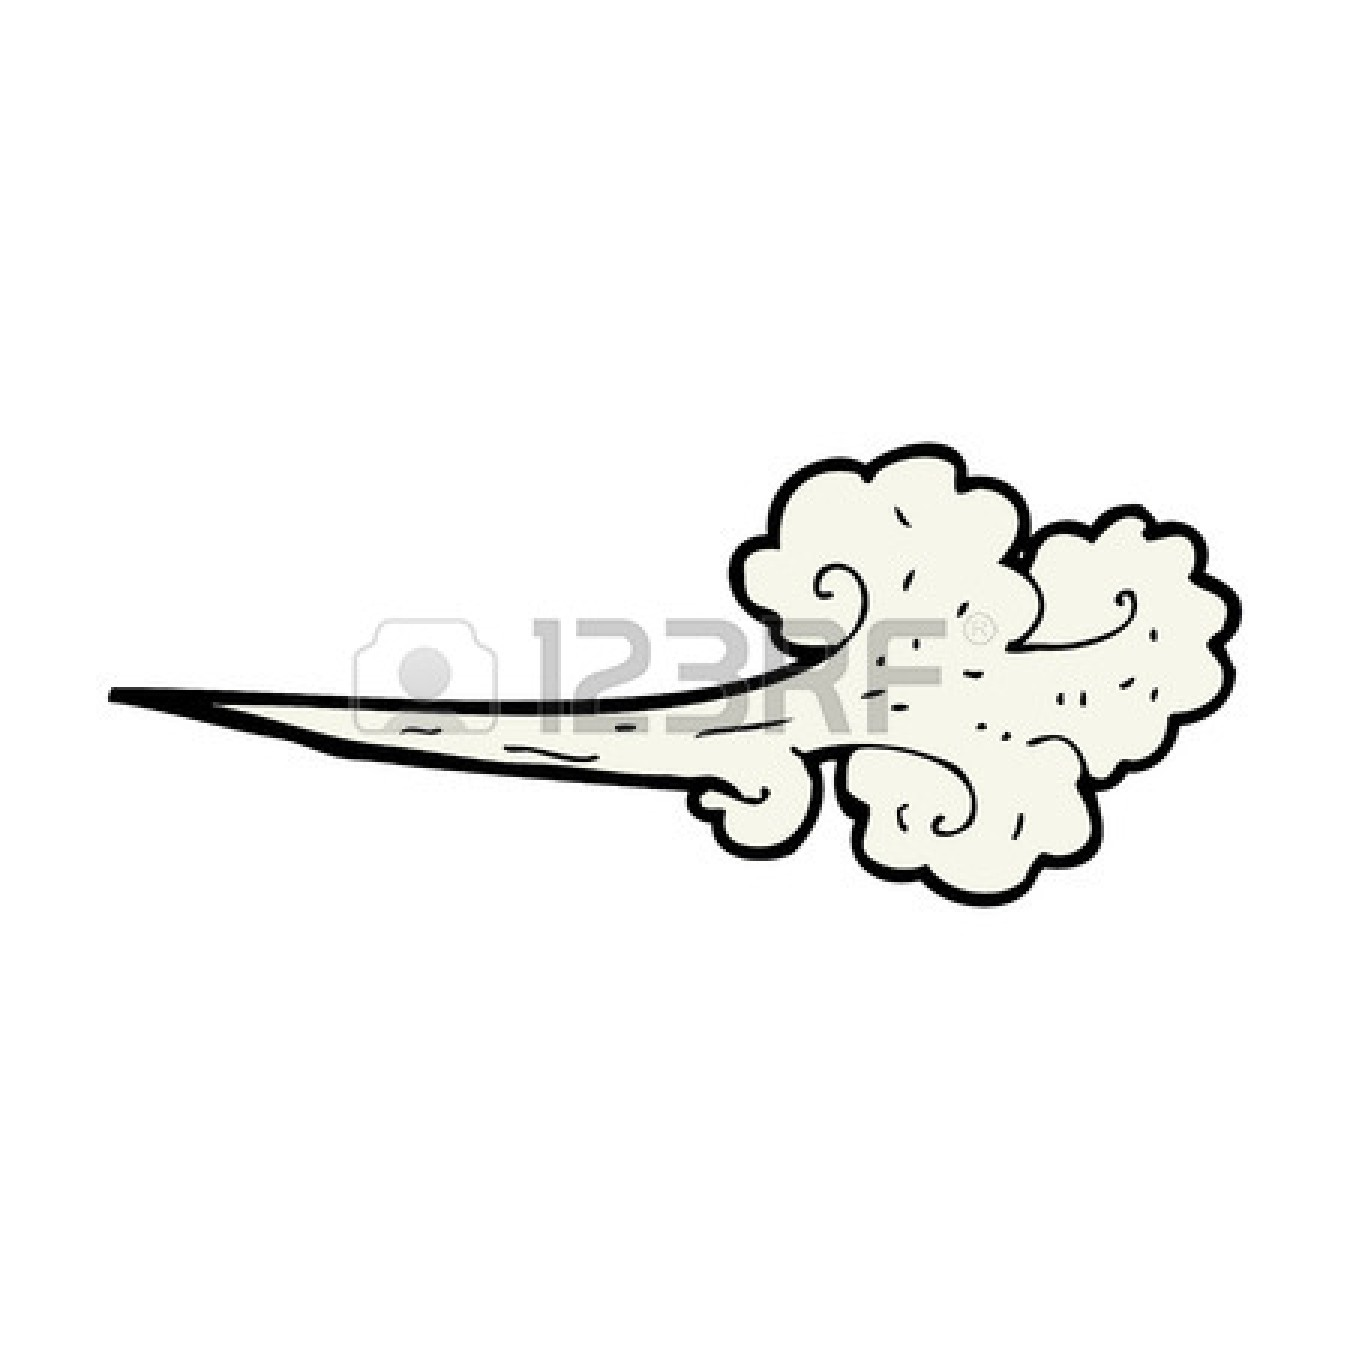 Logos in addition Stock Illustration Car Vehicle Icon Set Different Vector Car Form Cars Isolated White Background Illustration Image56857550 besides 291049103056 also Product path 77 product id 416 together with 22420. on racing graphic design